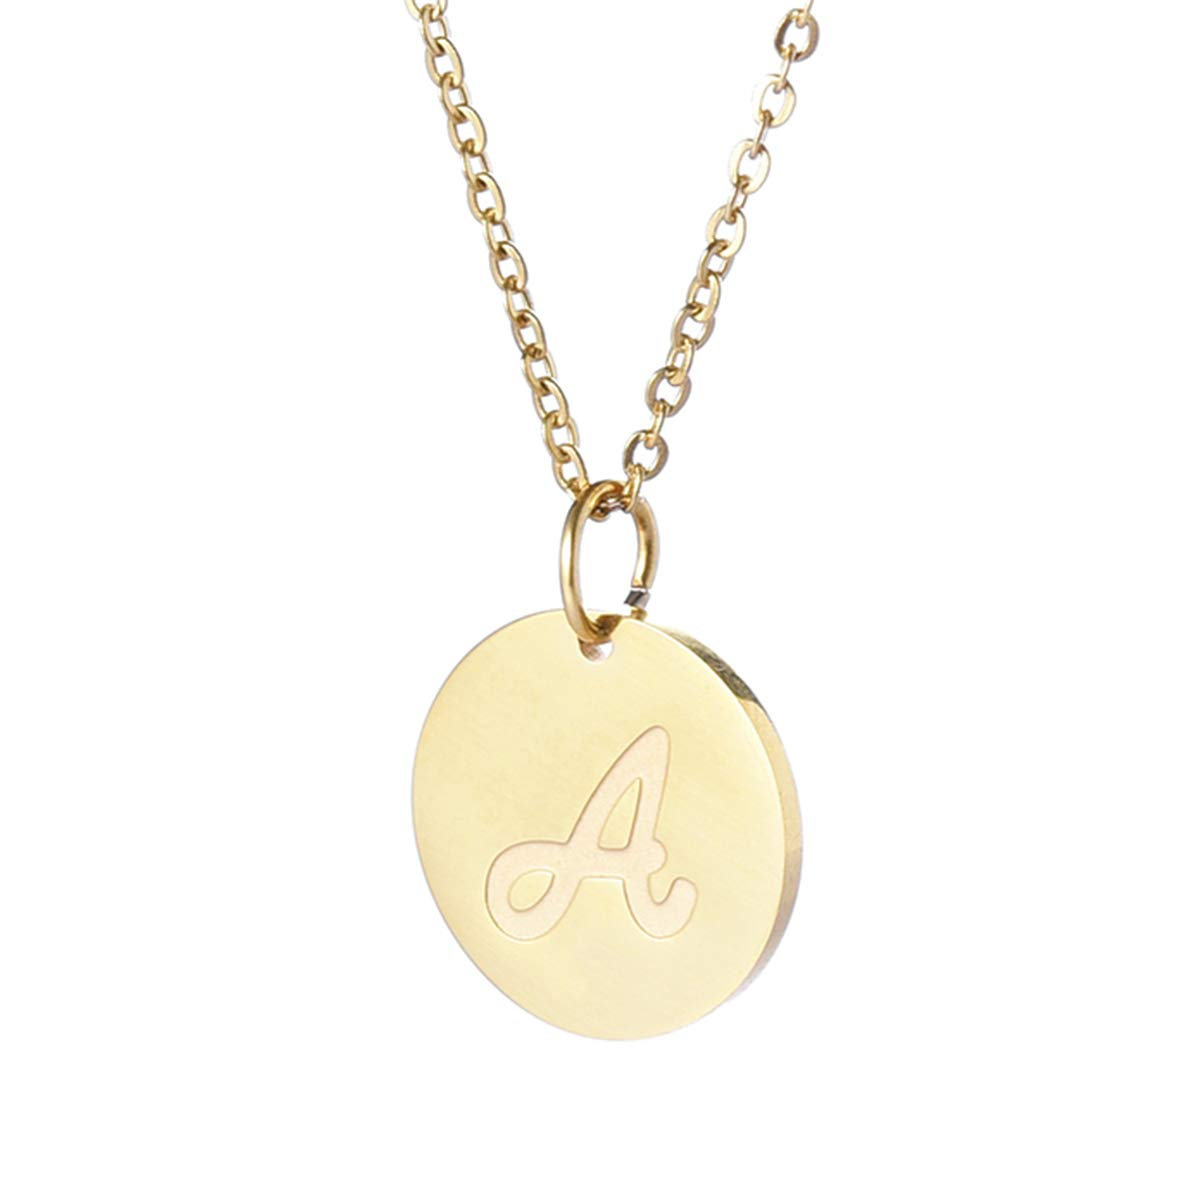 d4bbf0df7 TTVOVO Initial Letter Necklace Stainless Steel 18K Gold Filled Engraved  Personalized Disc 26 Alphabet Letter Monogram Name Charms Pendant Necklace  for Women ...